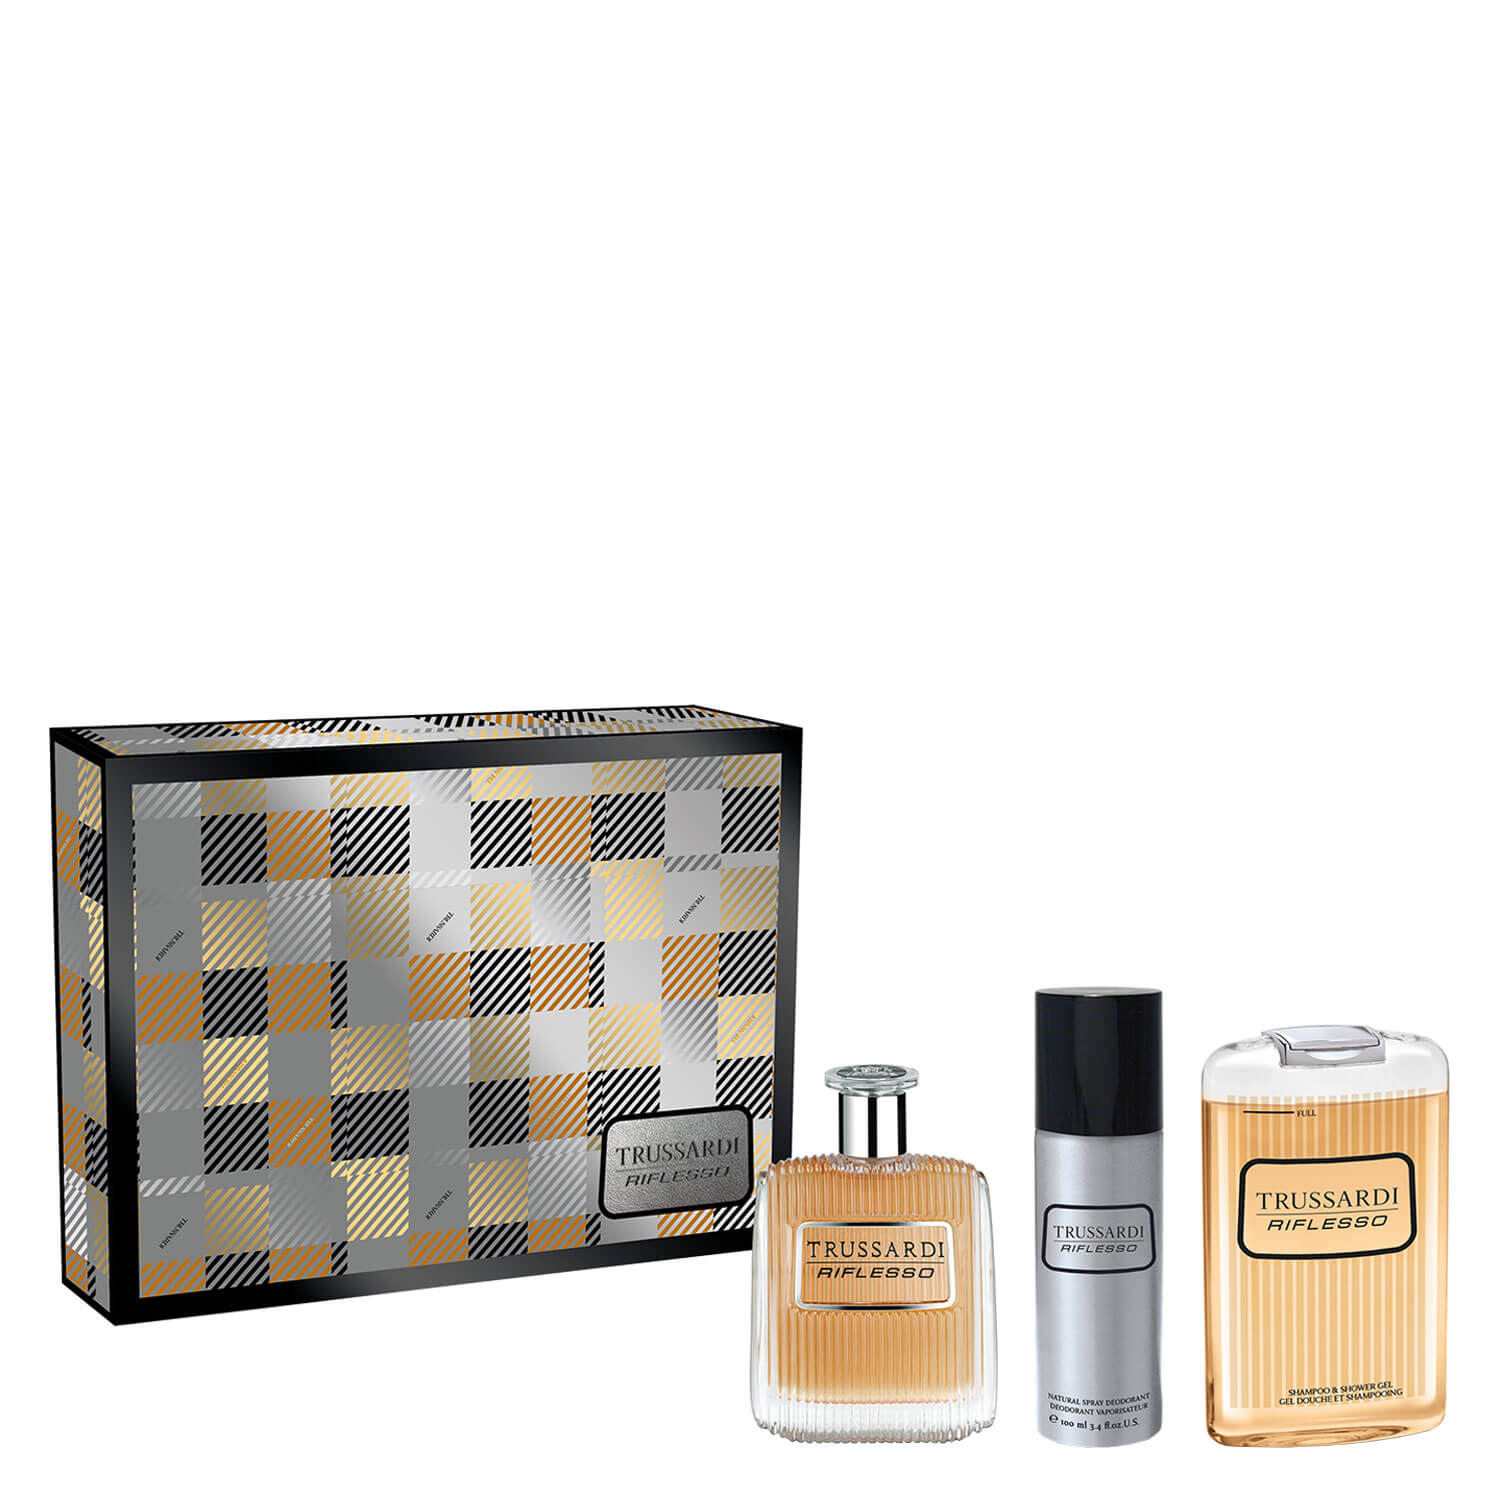 Riflesso - Eau de Toilette Set